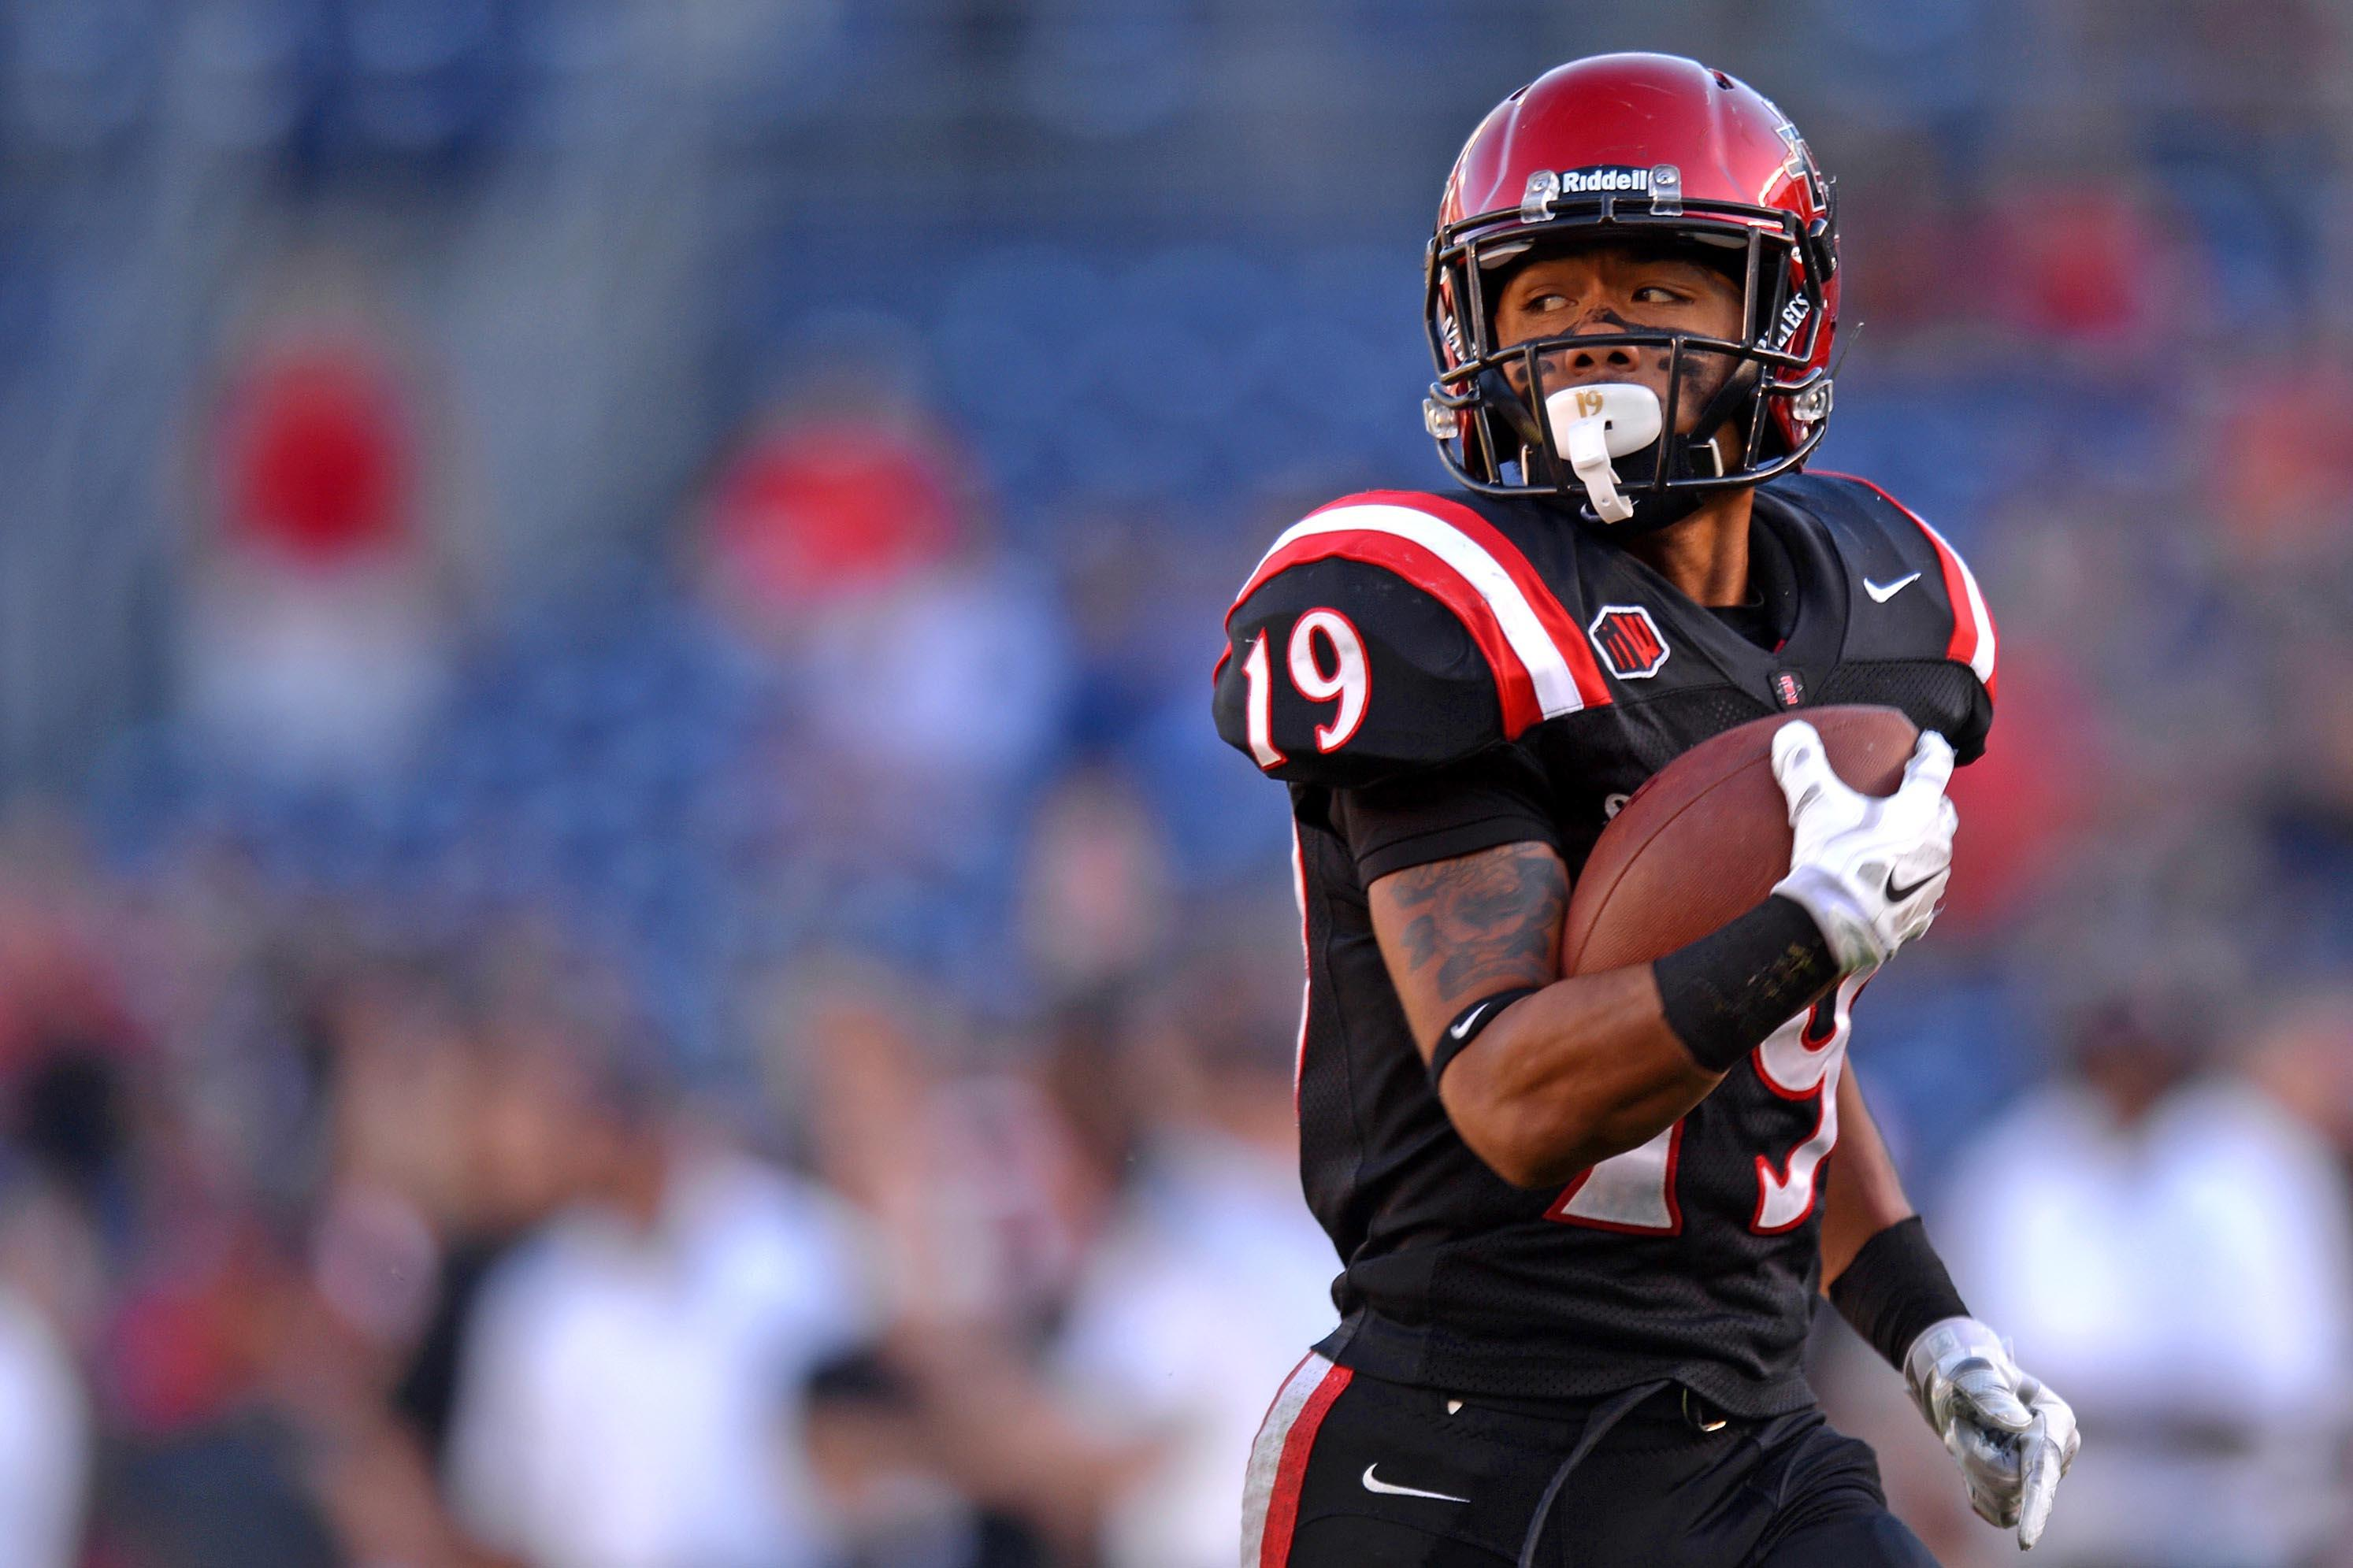 Poinsettia Bowl: It's a home game for San Diego State